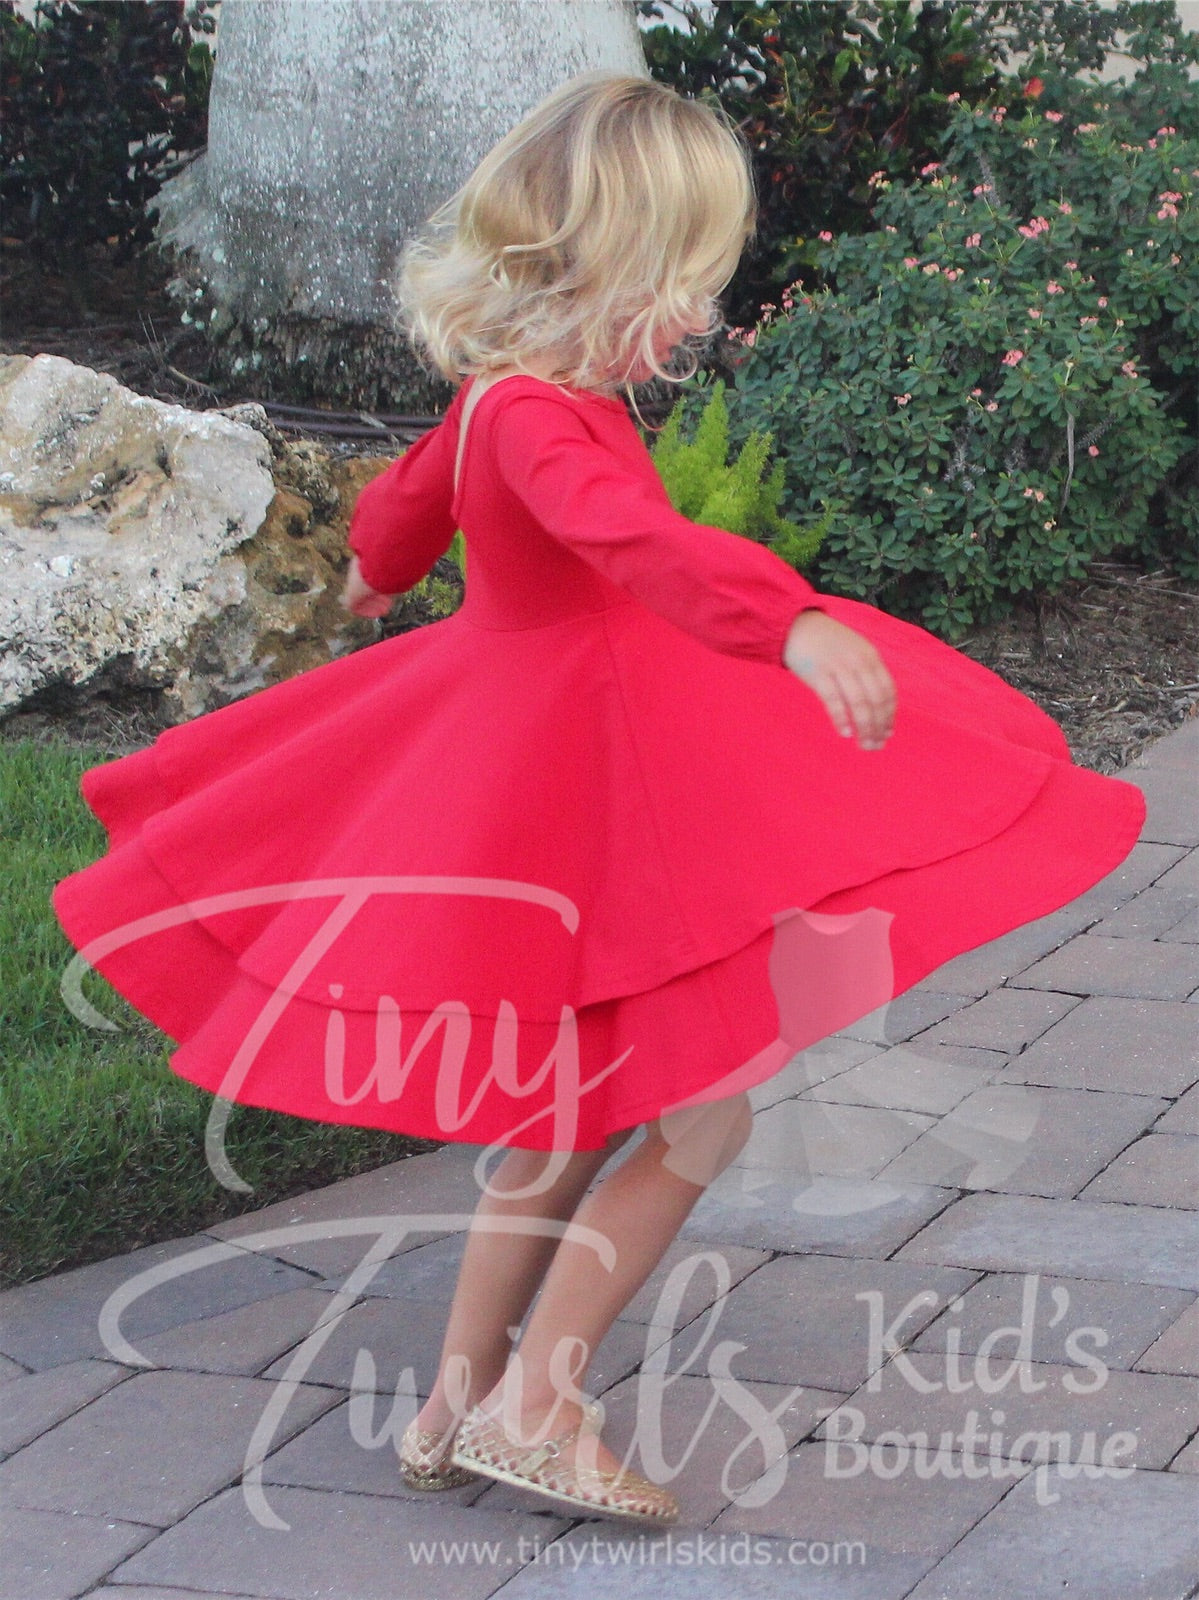 Christmas Red Double Twirl Dresses - In-Stock - Tiny Twirls Kids Boutique